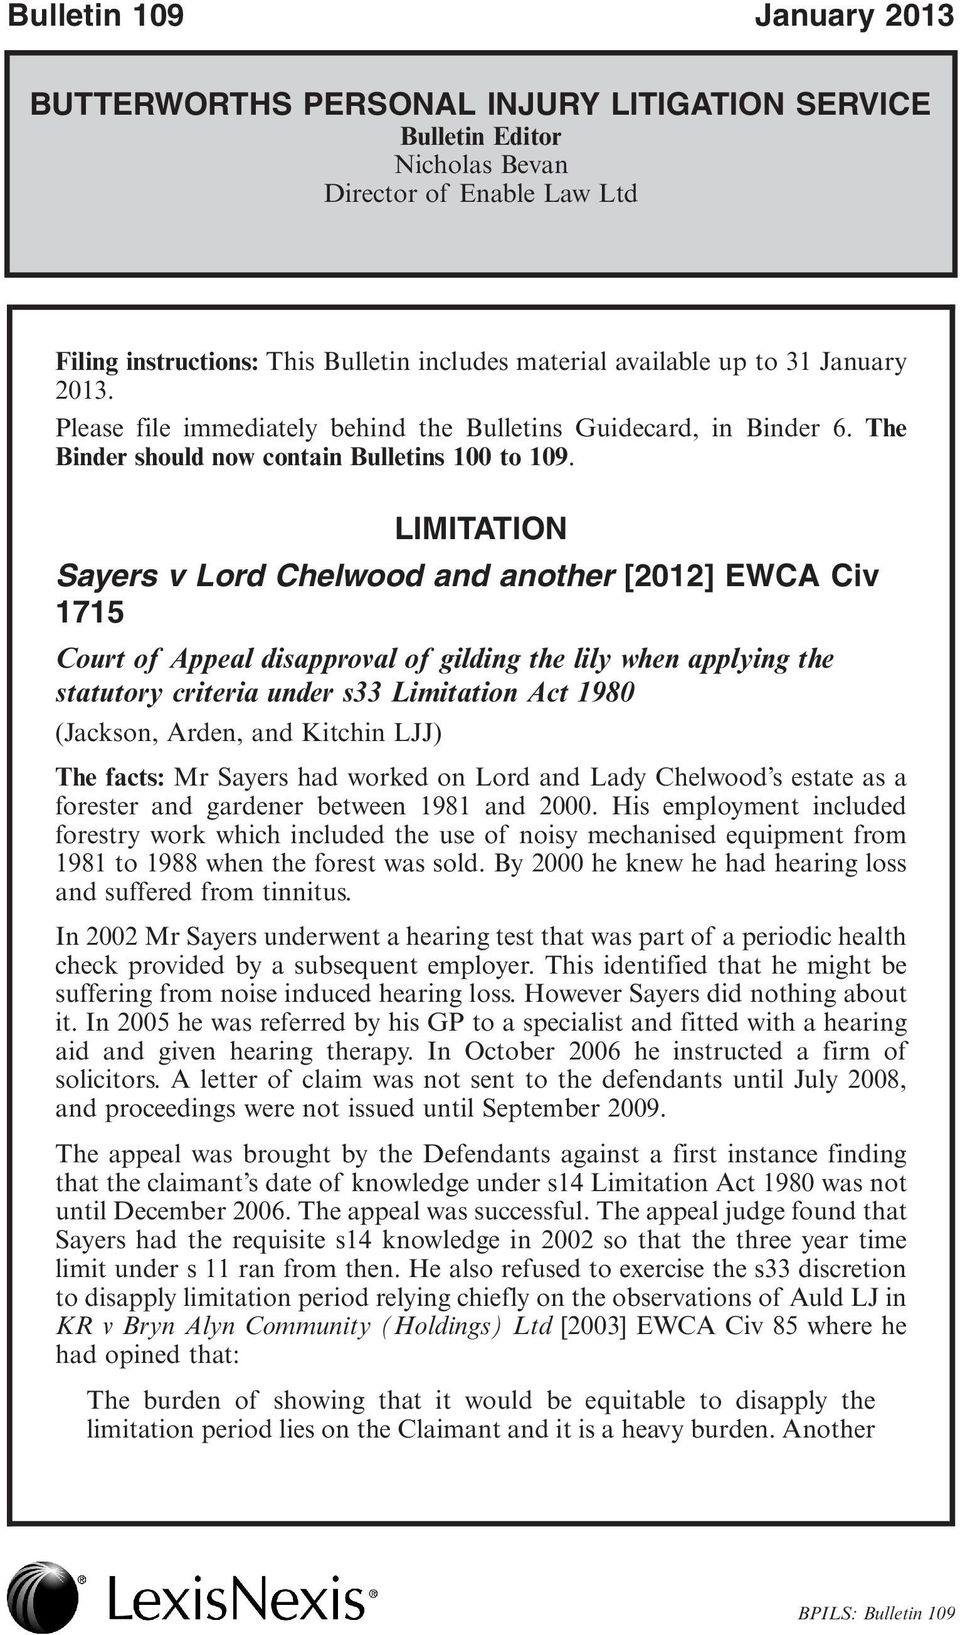 LIMITATION Sayers v Lord Chelwood and another [2012] EWCA Civ 1715 Court of Appeal disapproval of gilding the lily when applying the statutory criteria under s33 Limitation Act 1980 (Jackson, Arden,